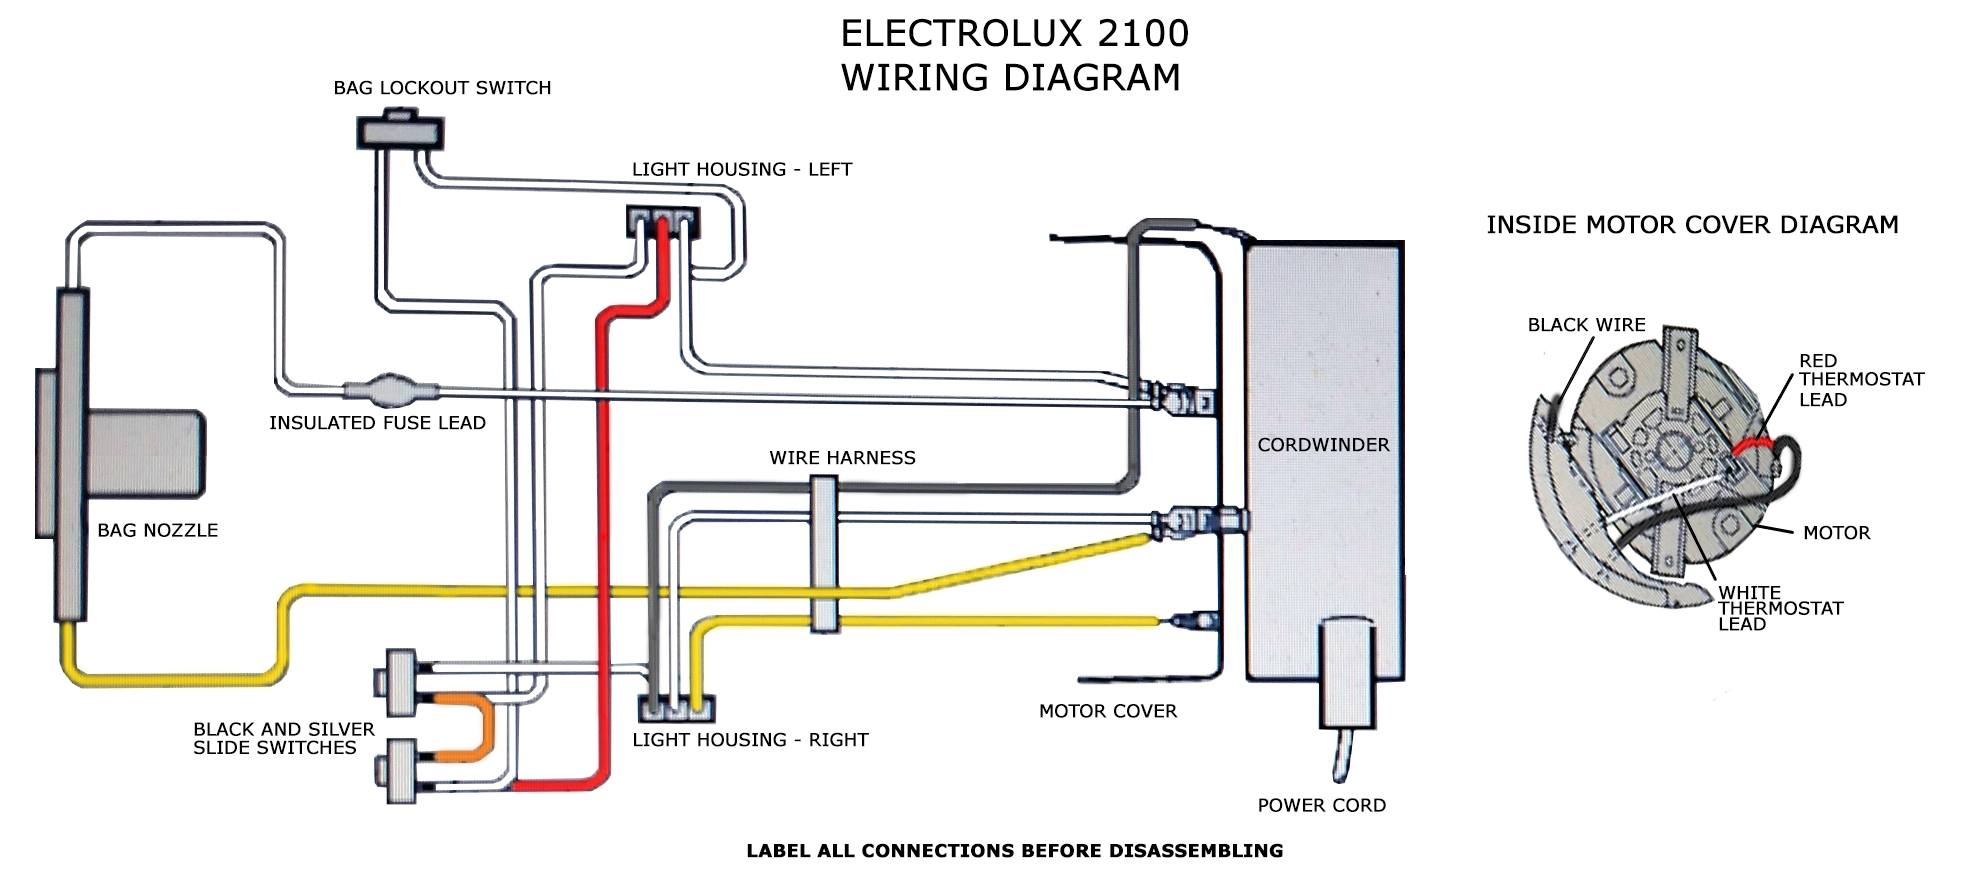 2100 wiring diagram miele vacuum wiring diagram osram wiring diagram \u2022 wiring diagram geyser wiring diagram at creativeand.co